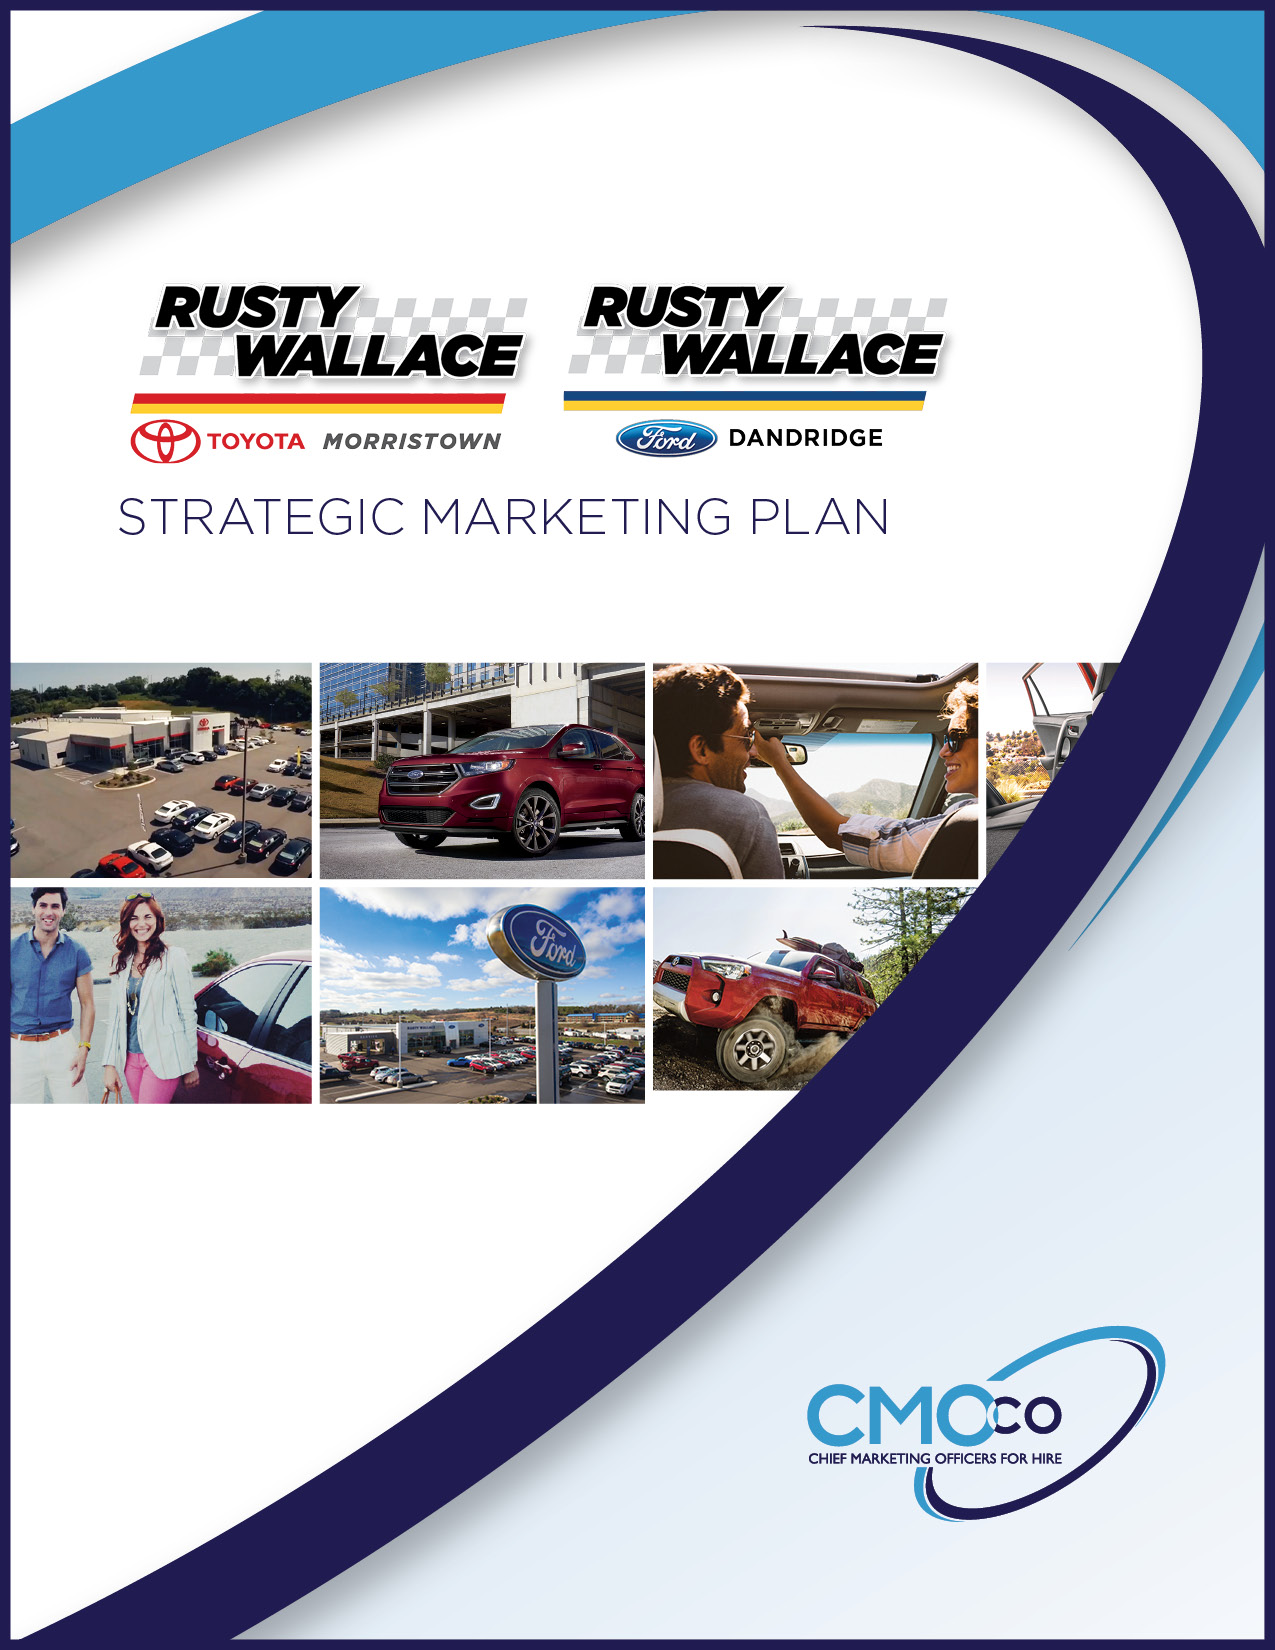 CMOco develops highly strategic marketing plans to help you rise above your competition.